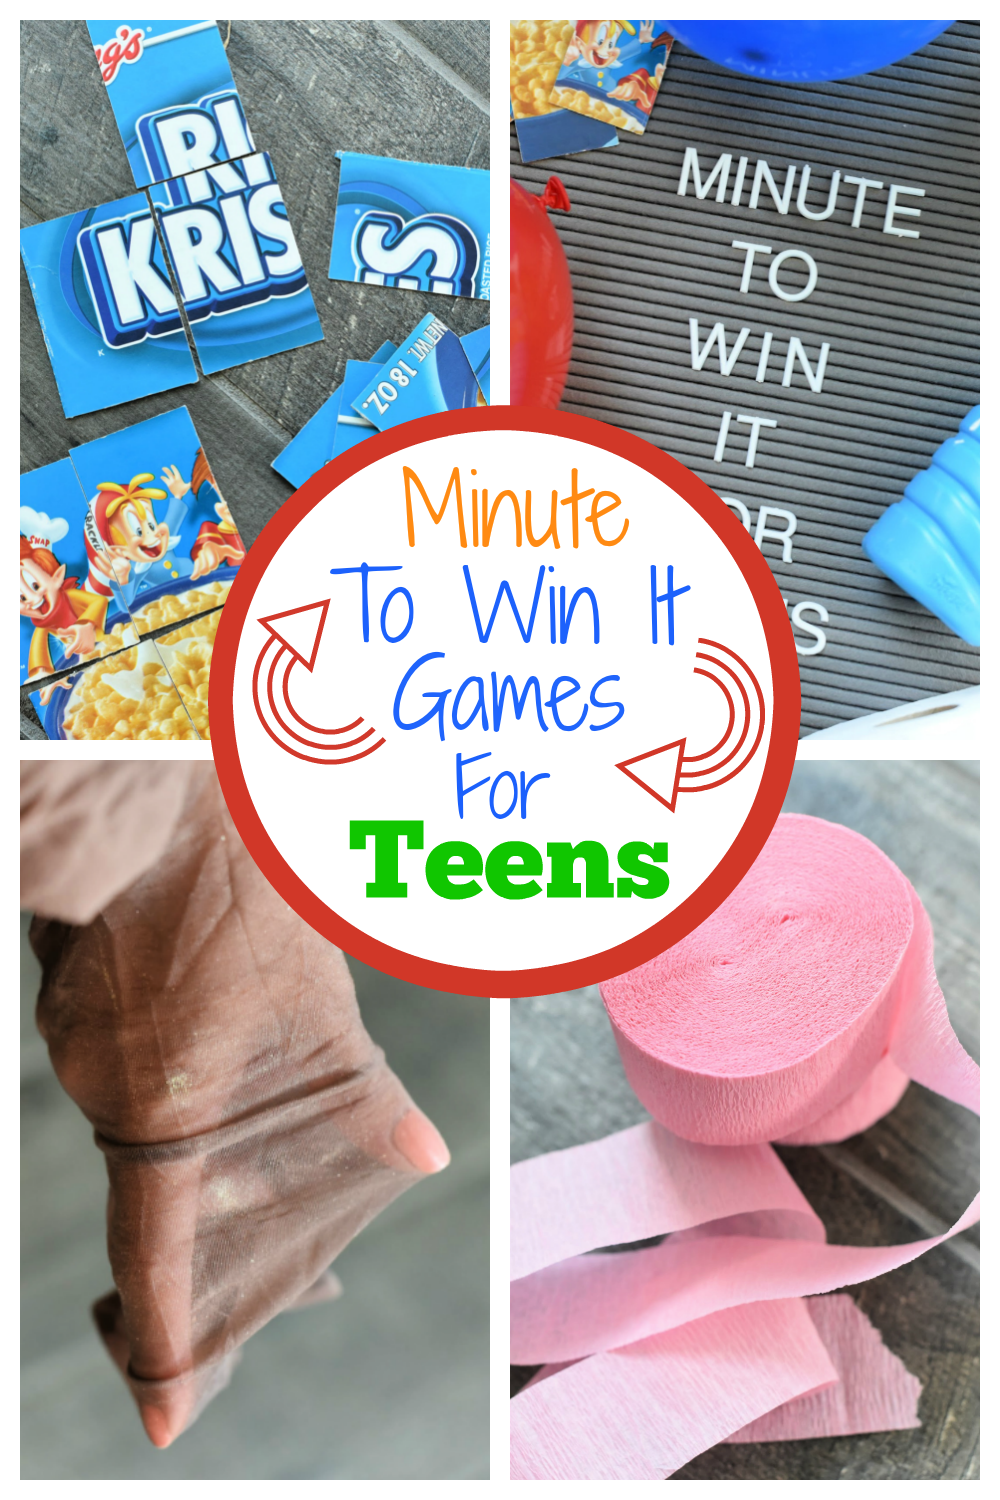 Minute to Win it Games for Teens. Fun party games for teens for your next party! #minutetowinit #teenparty #partygames #teenpartygames